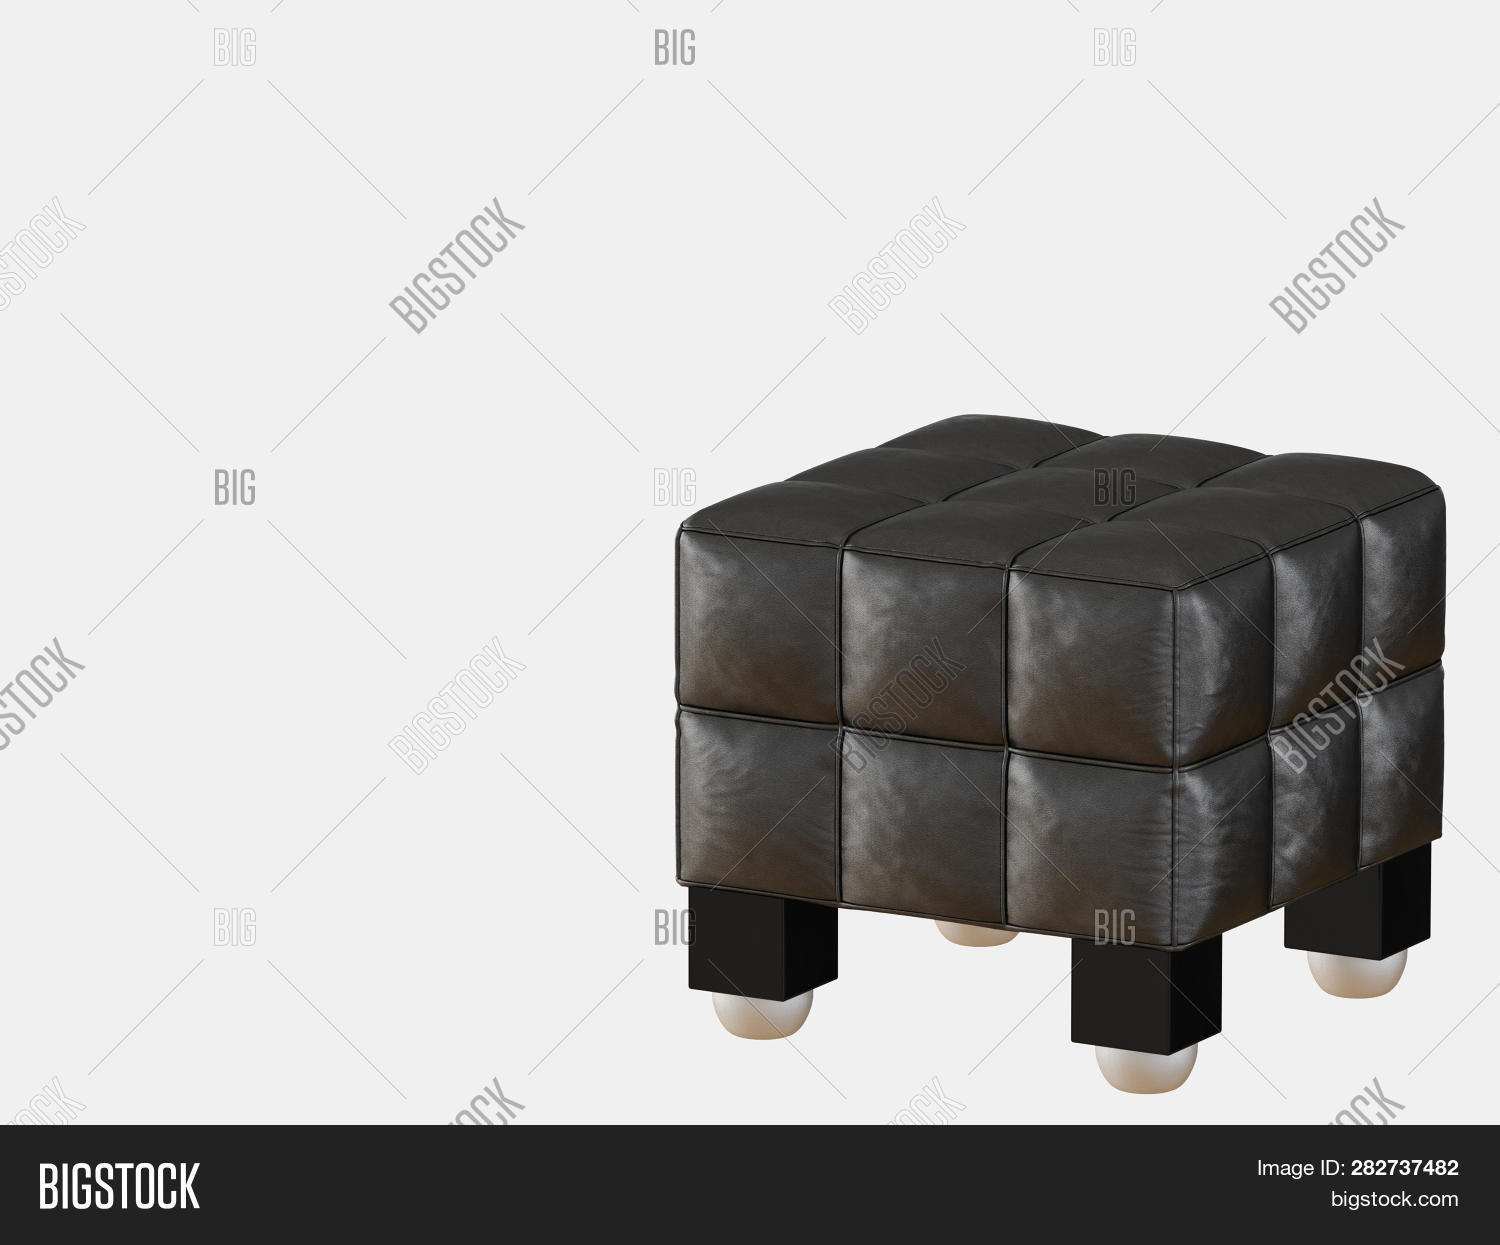 Incredible Black Leather Ottoman Image Photo Free Trial Bigstock Short Links Chair Design For Home Short Linksinfo